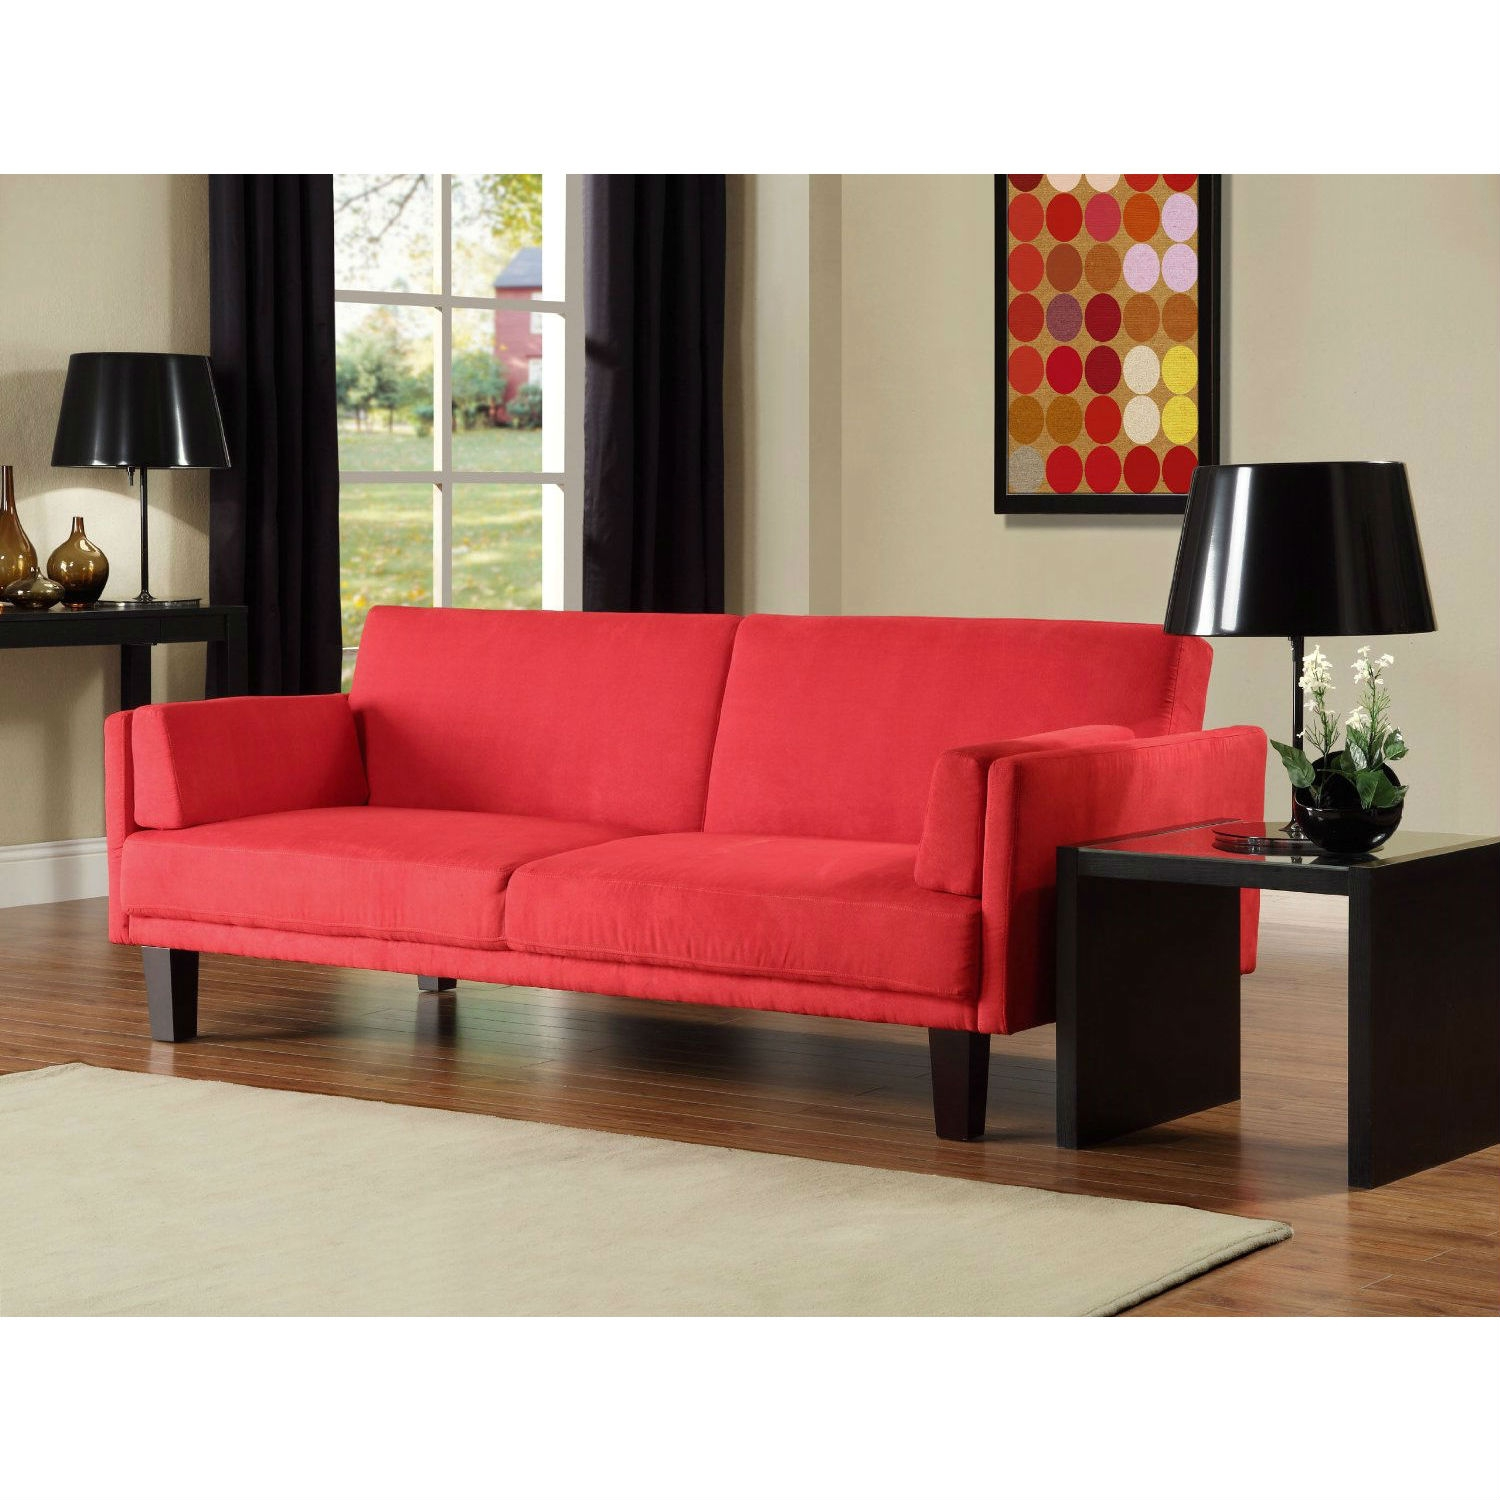 Contemporary MidCentury Style Sofa Bed in Red Microfiber